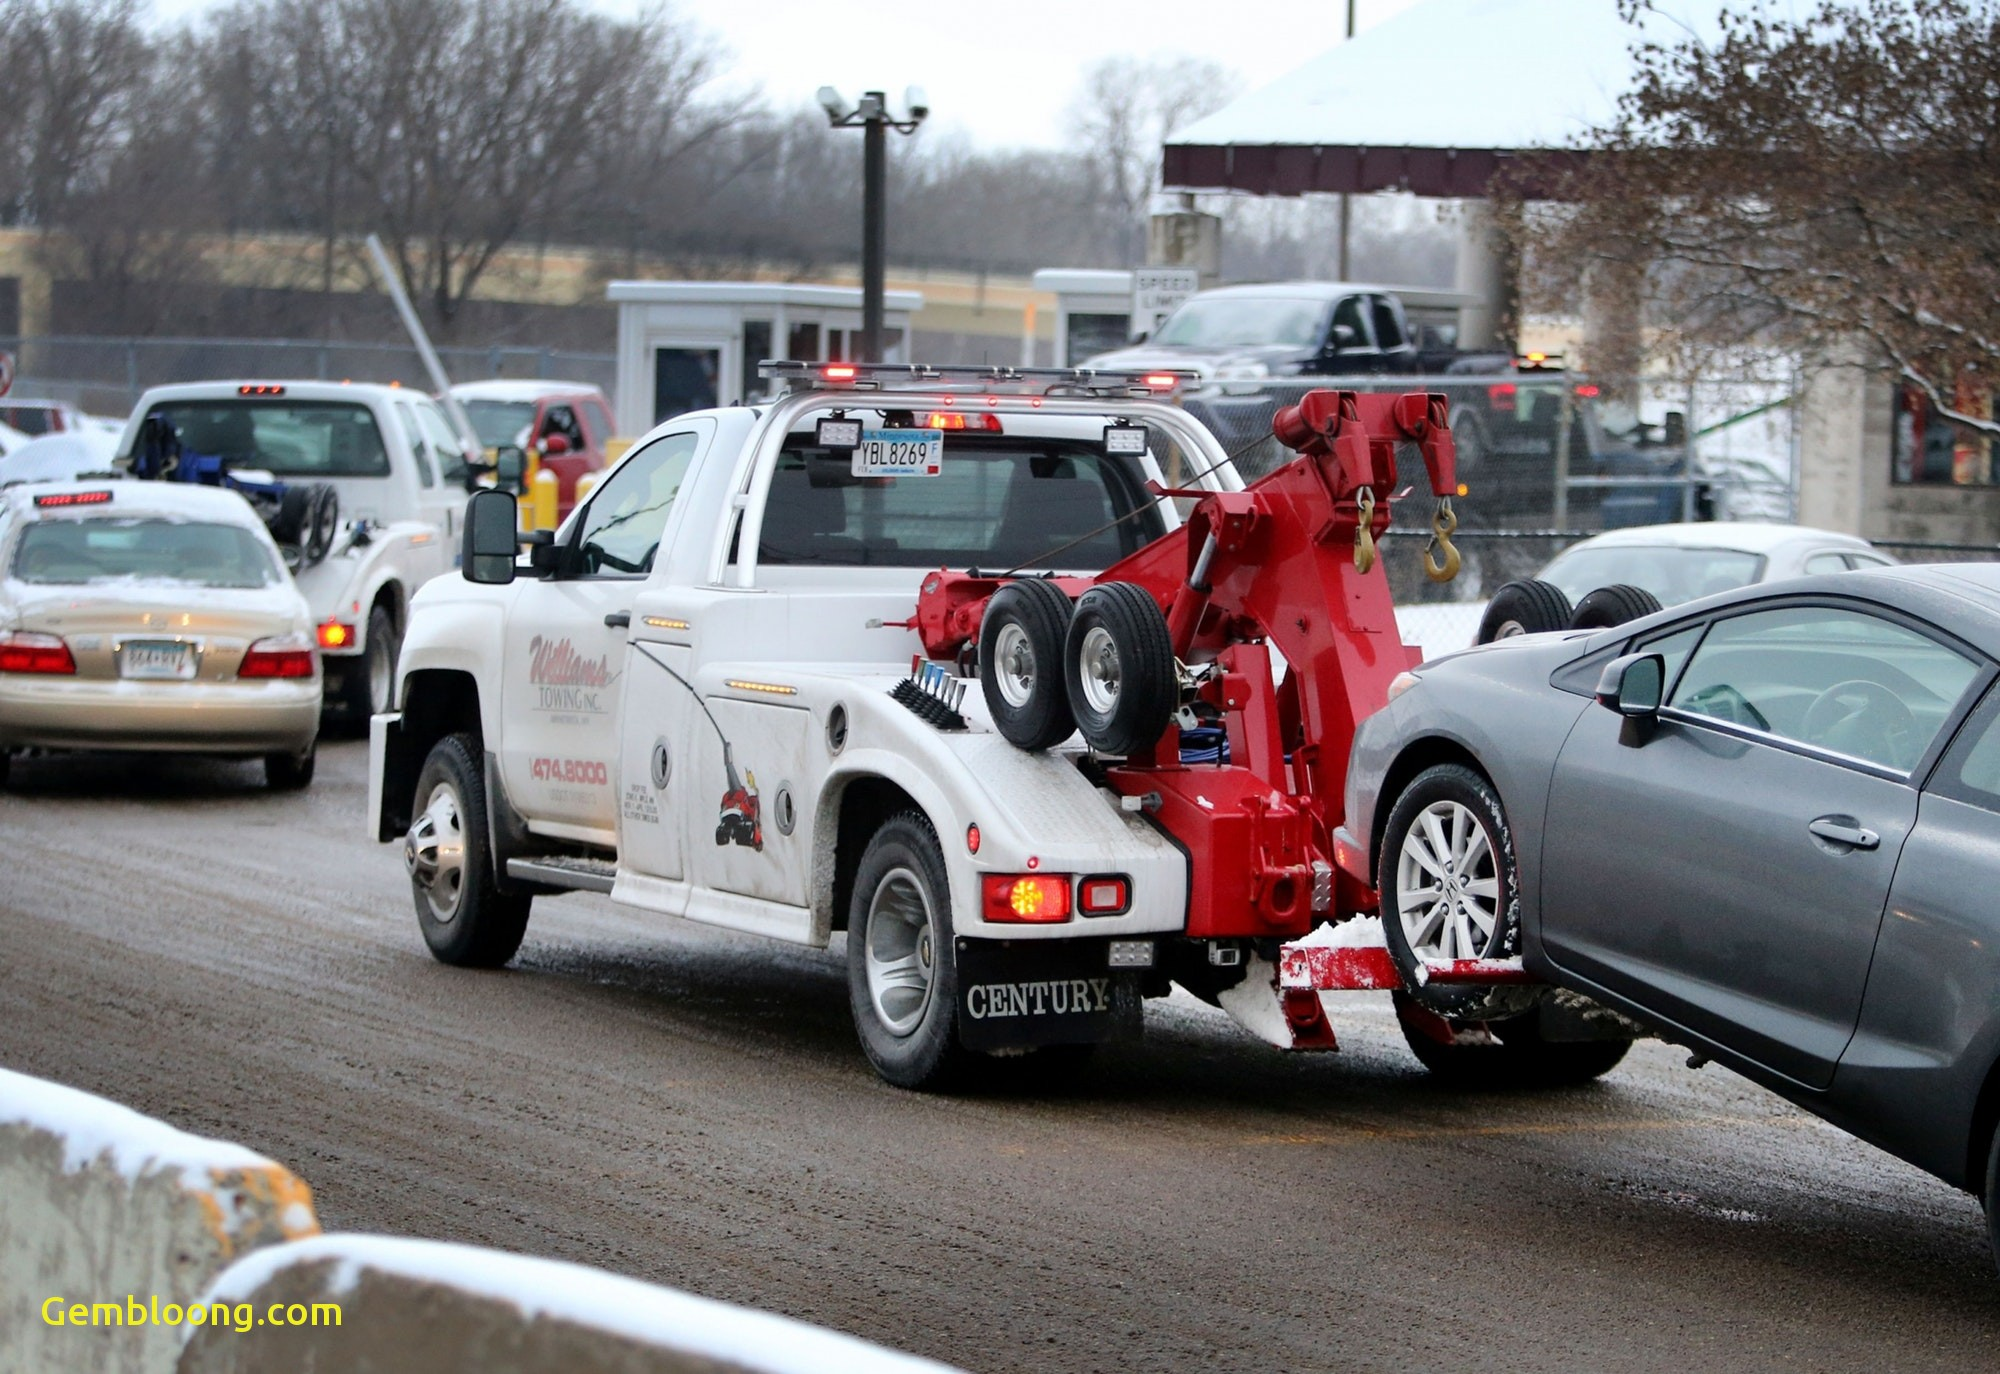 david joles star tribune gallery another big day at the minneapolis impound lot from tow yard cars for sale near me